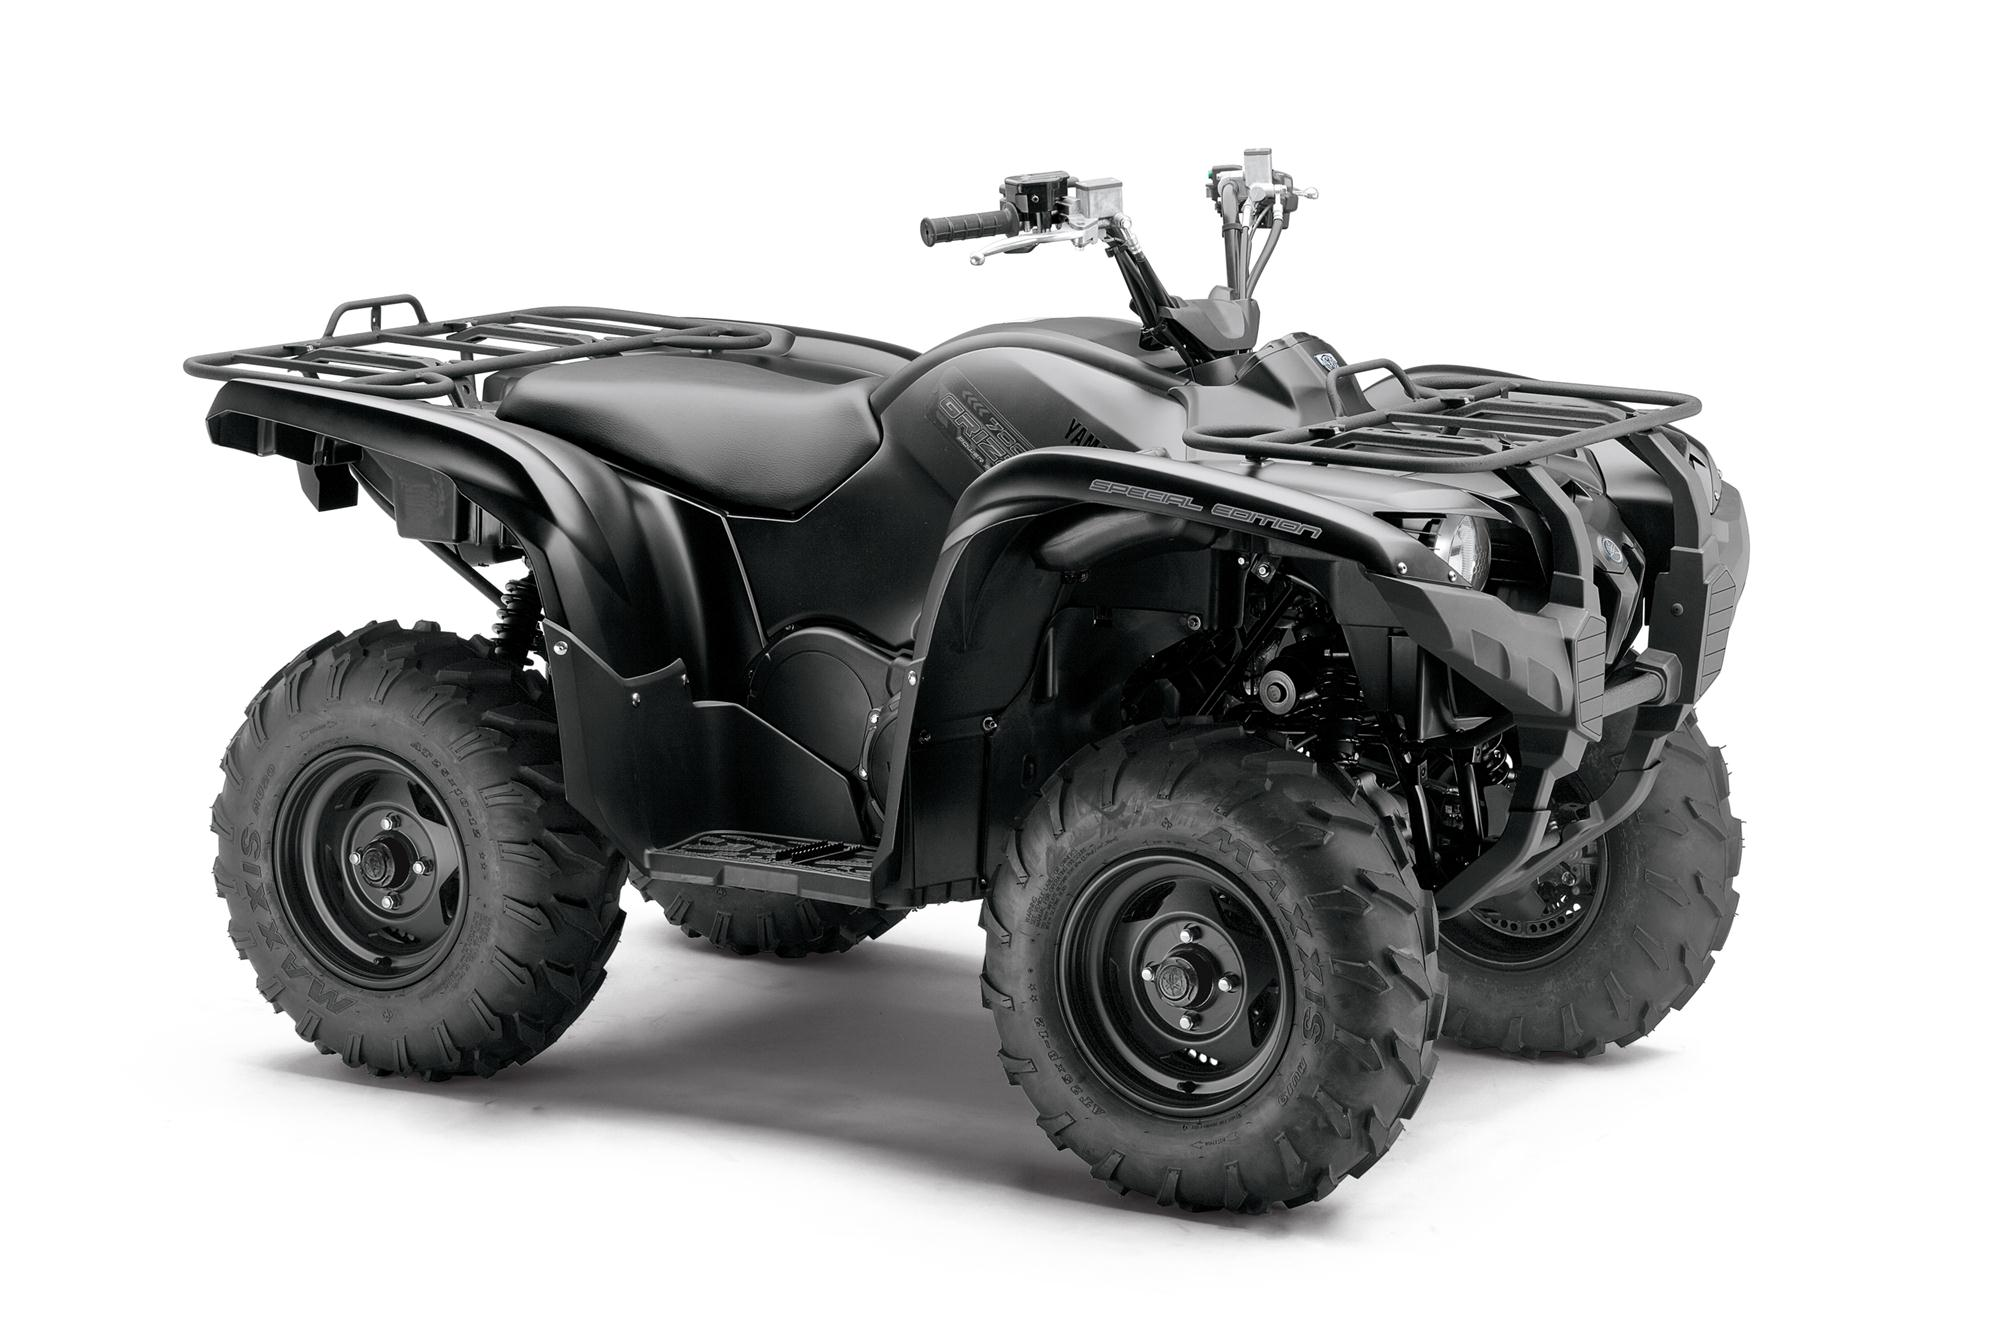 2013 yamaha grizzly 700 fi auto 4x4 eps special edition autoevolution